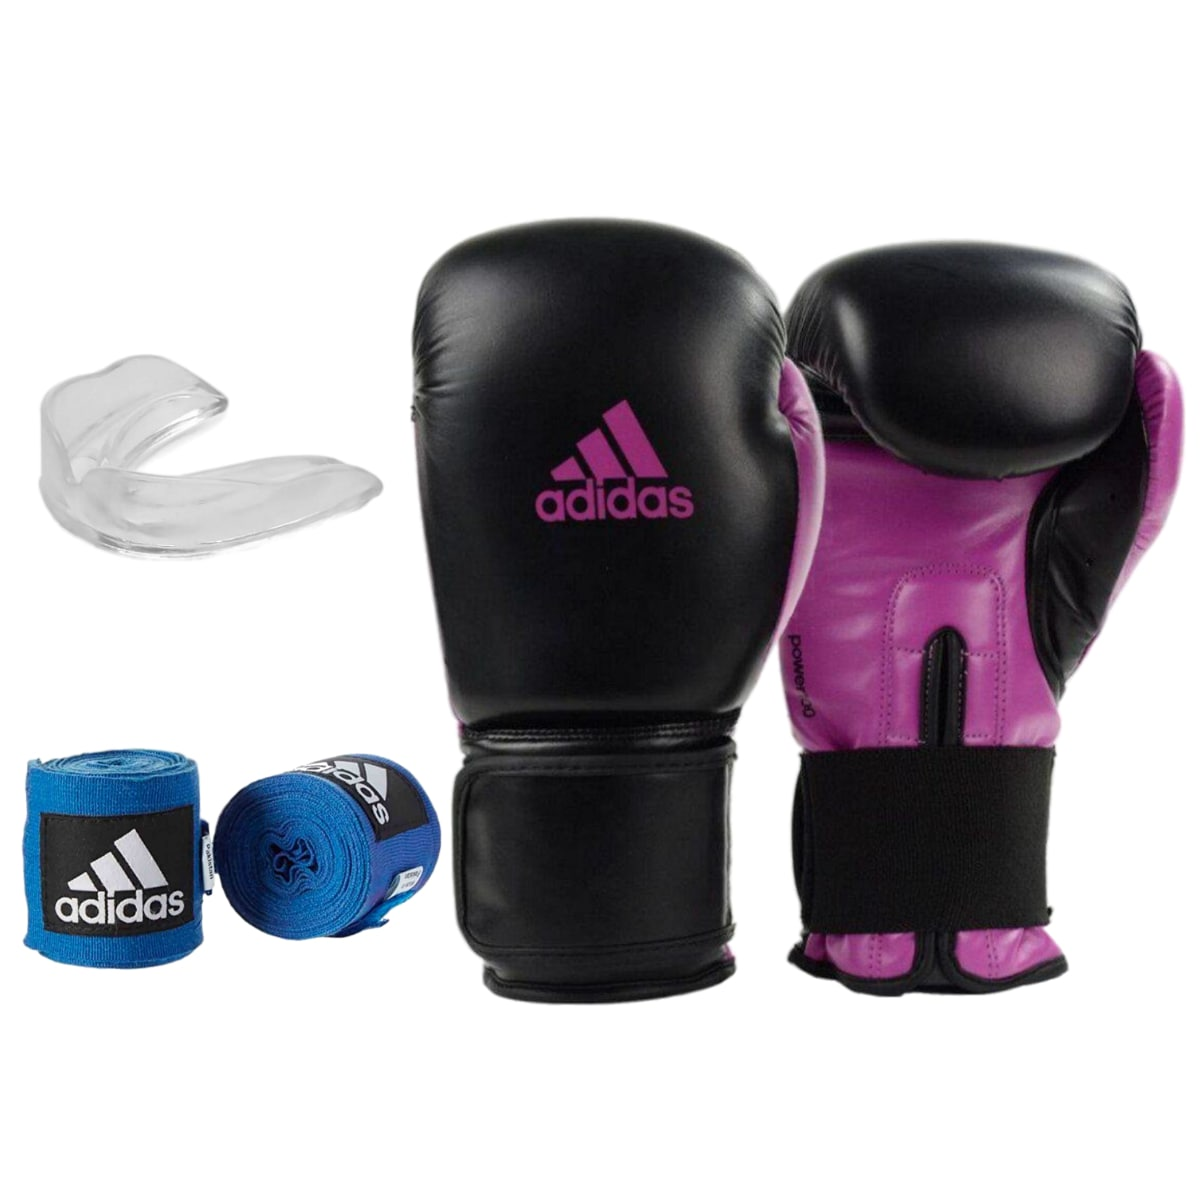 Kit Boxe Adidas Power 100: Luva + Bandagem + Bucal - Preto e Rosa